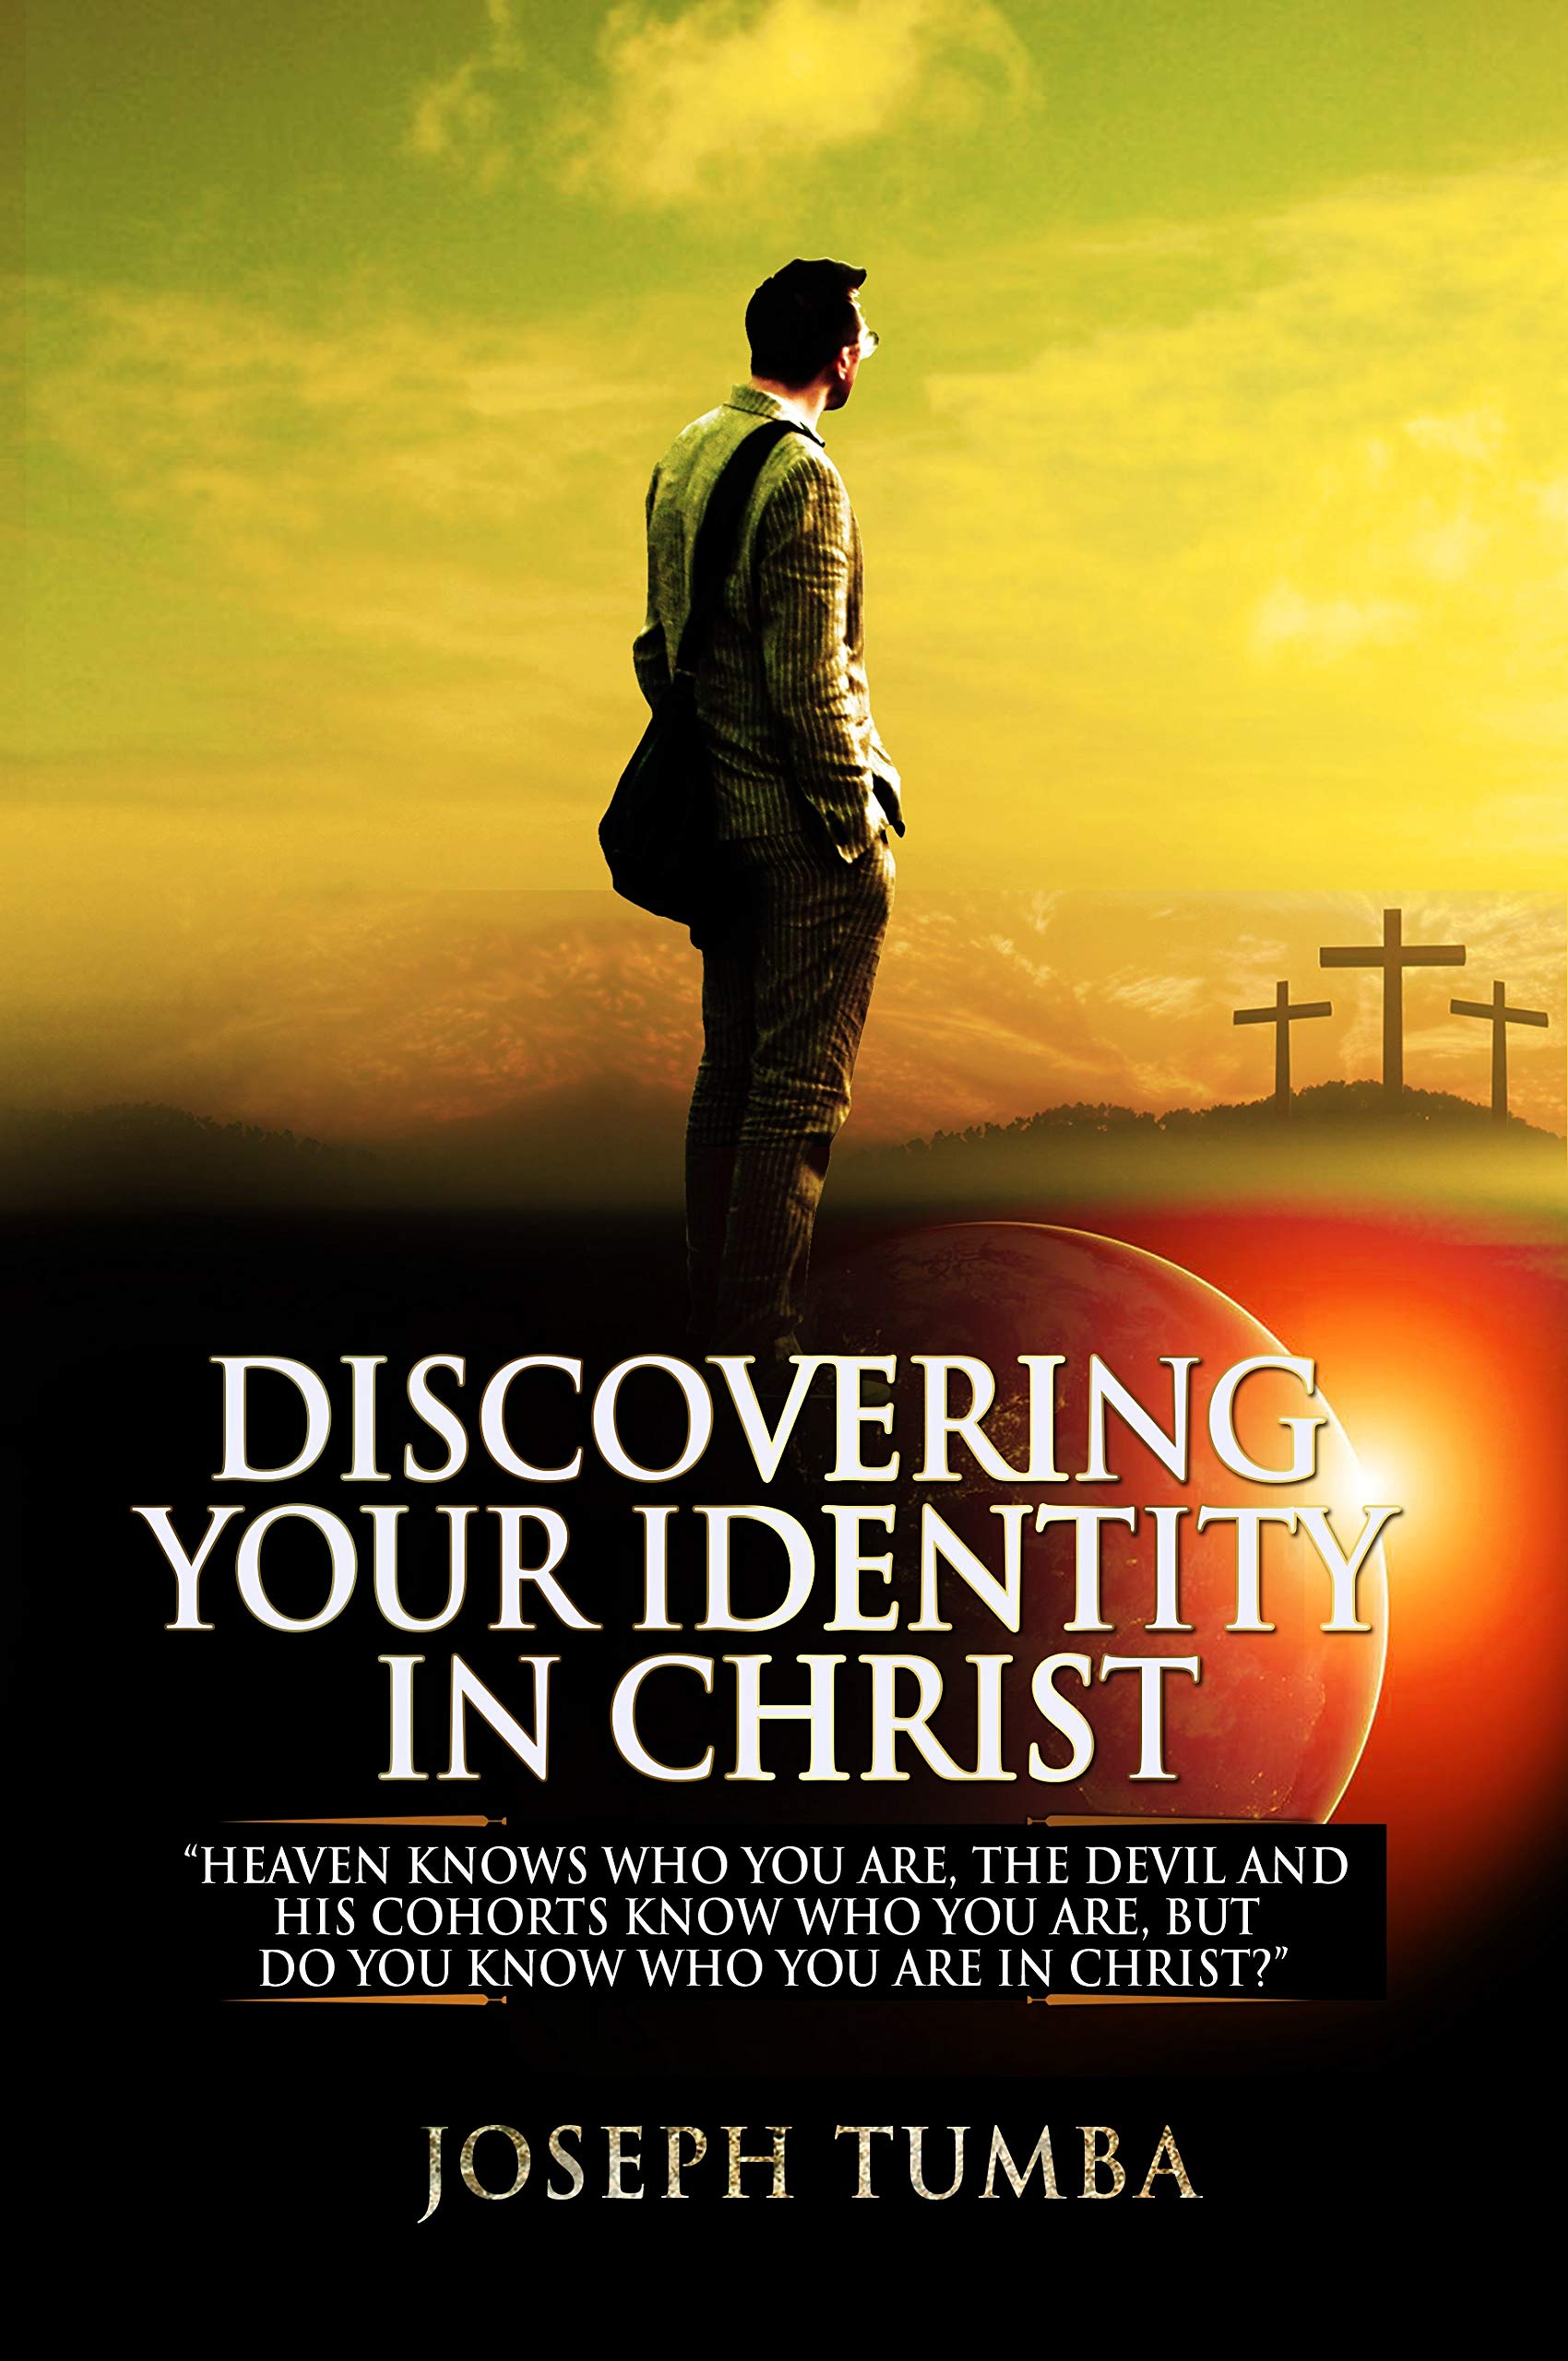 """DISCOVERING YOUR IDENTITY IN CHRIST: """"Heaven knows who you are, the devil and his cohorts know who you are, But do you know who you are in Christ?"""""""